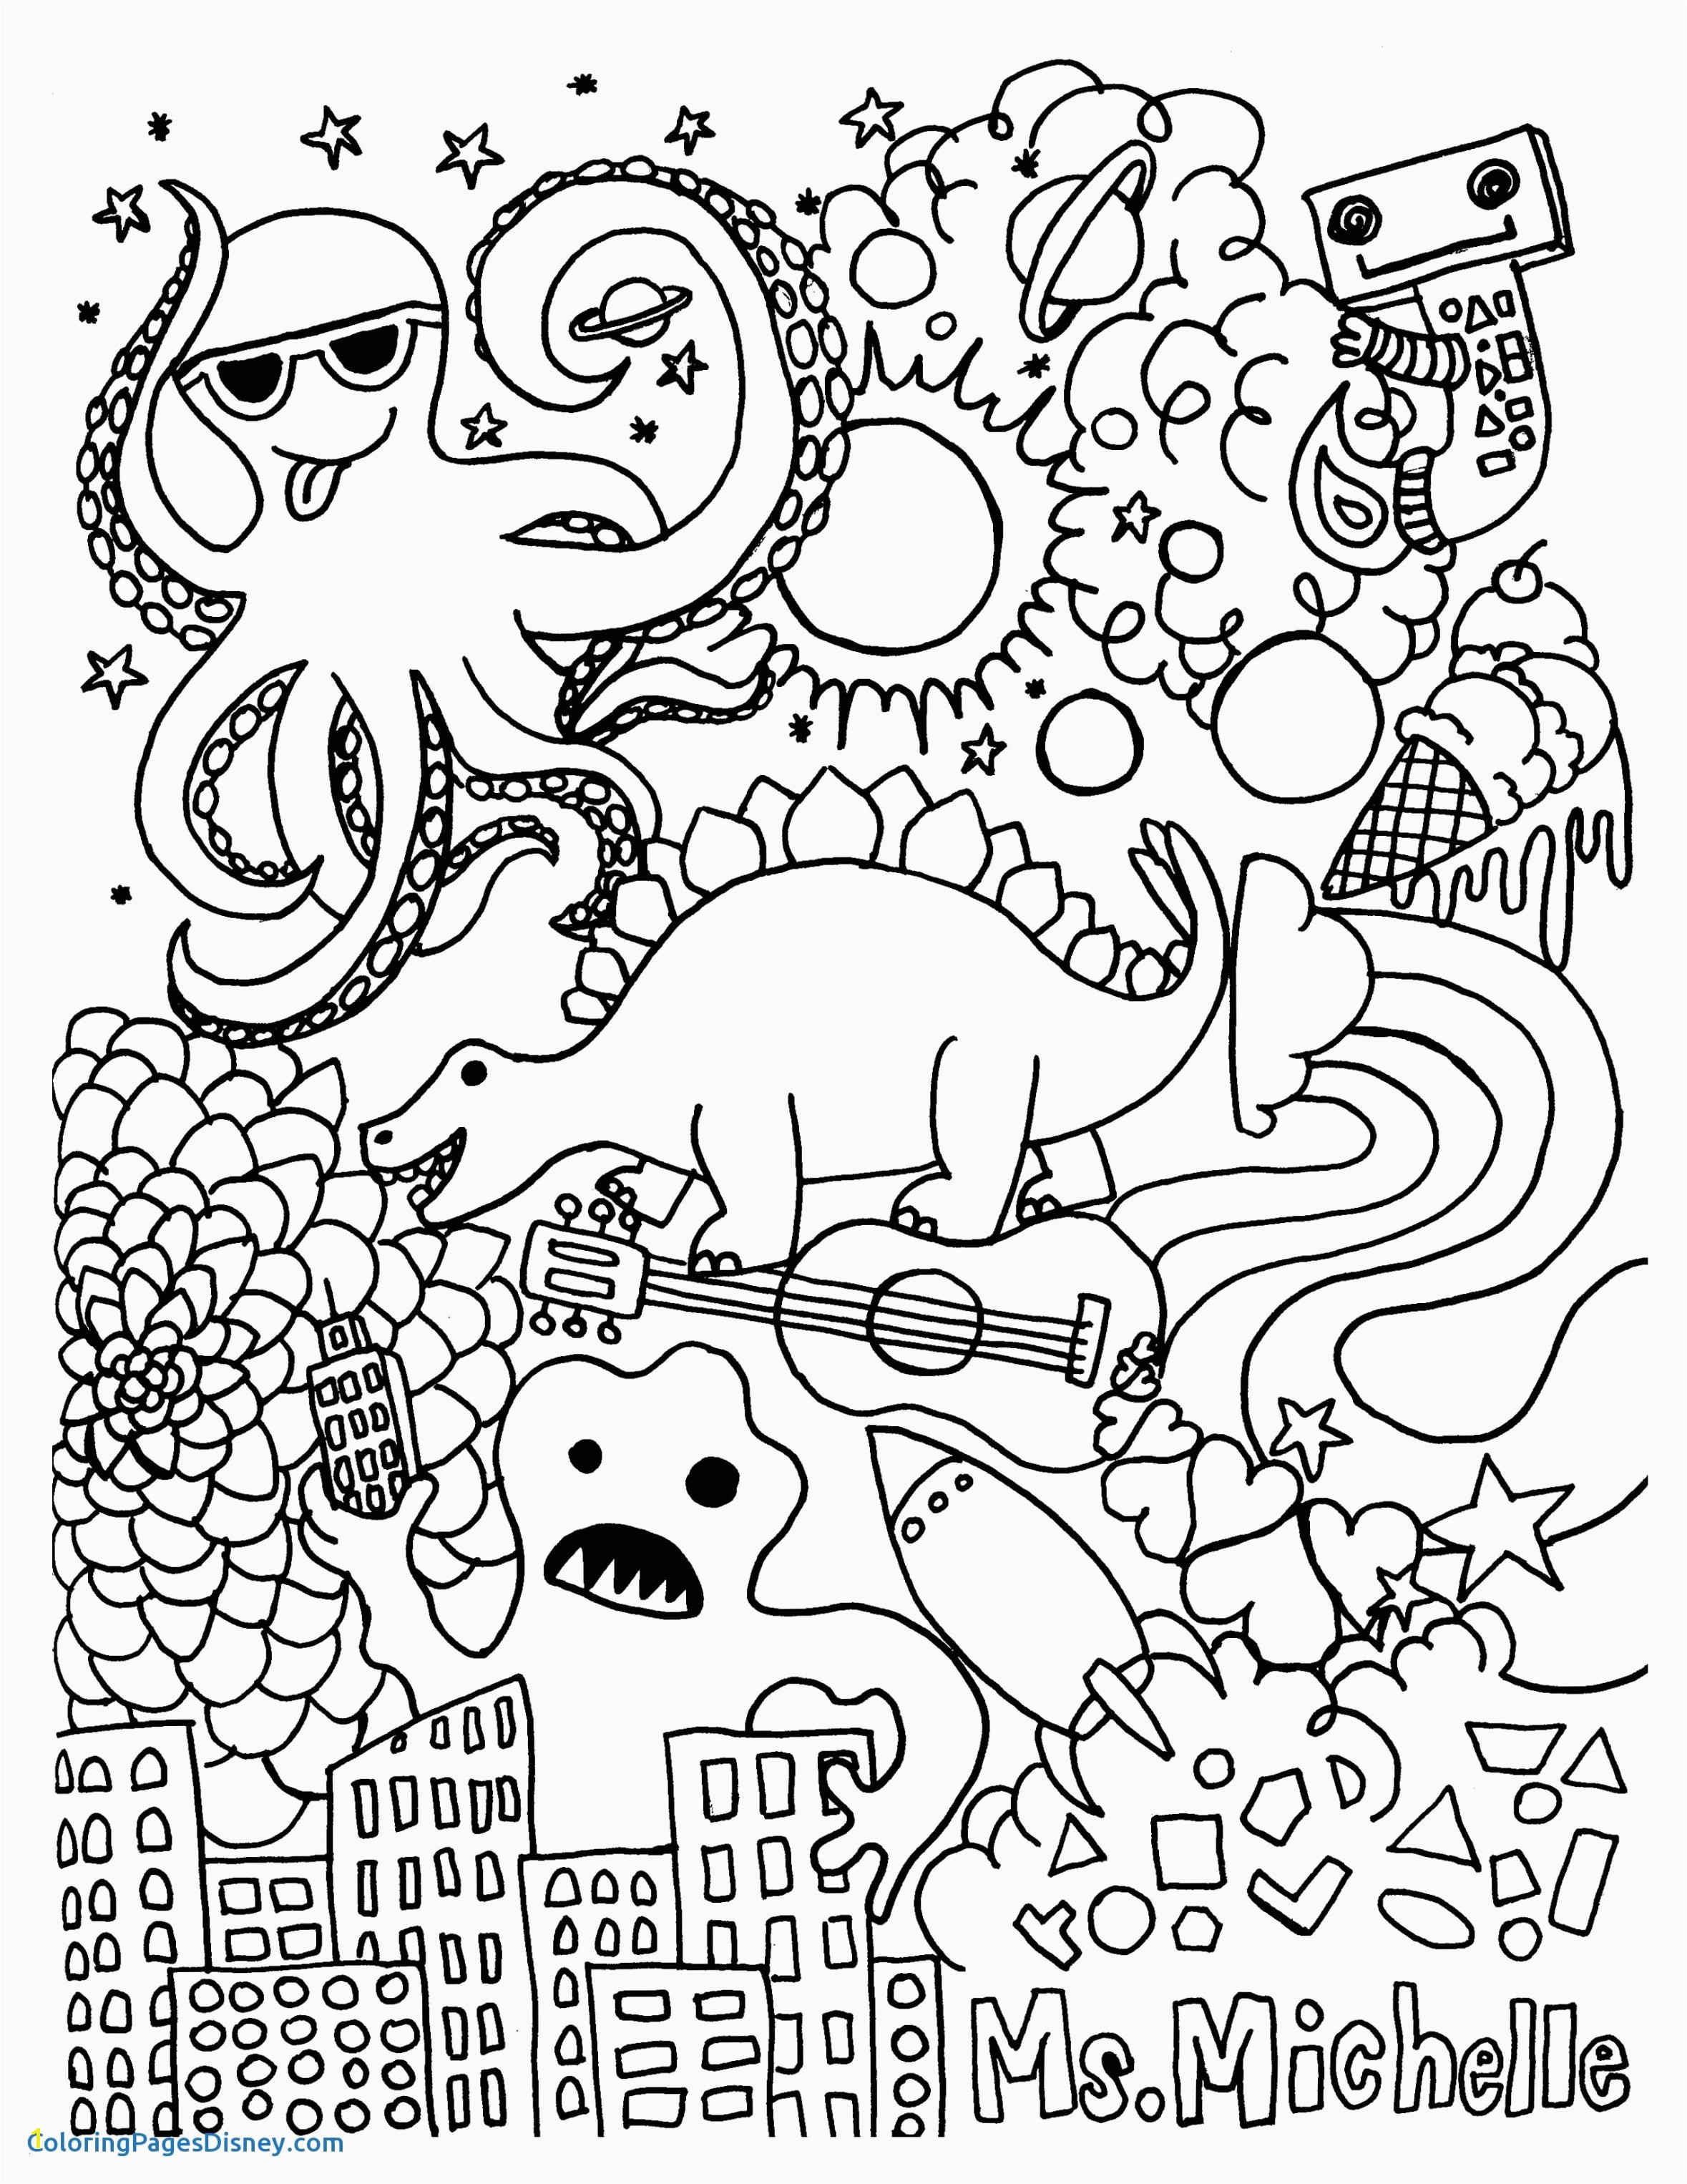 Tooth Coloring Pages Printable Popular Frozen Printable Coloring Pages Letramac